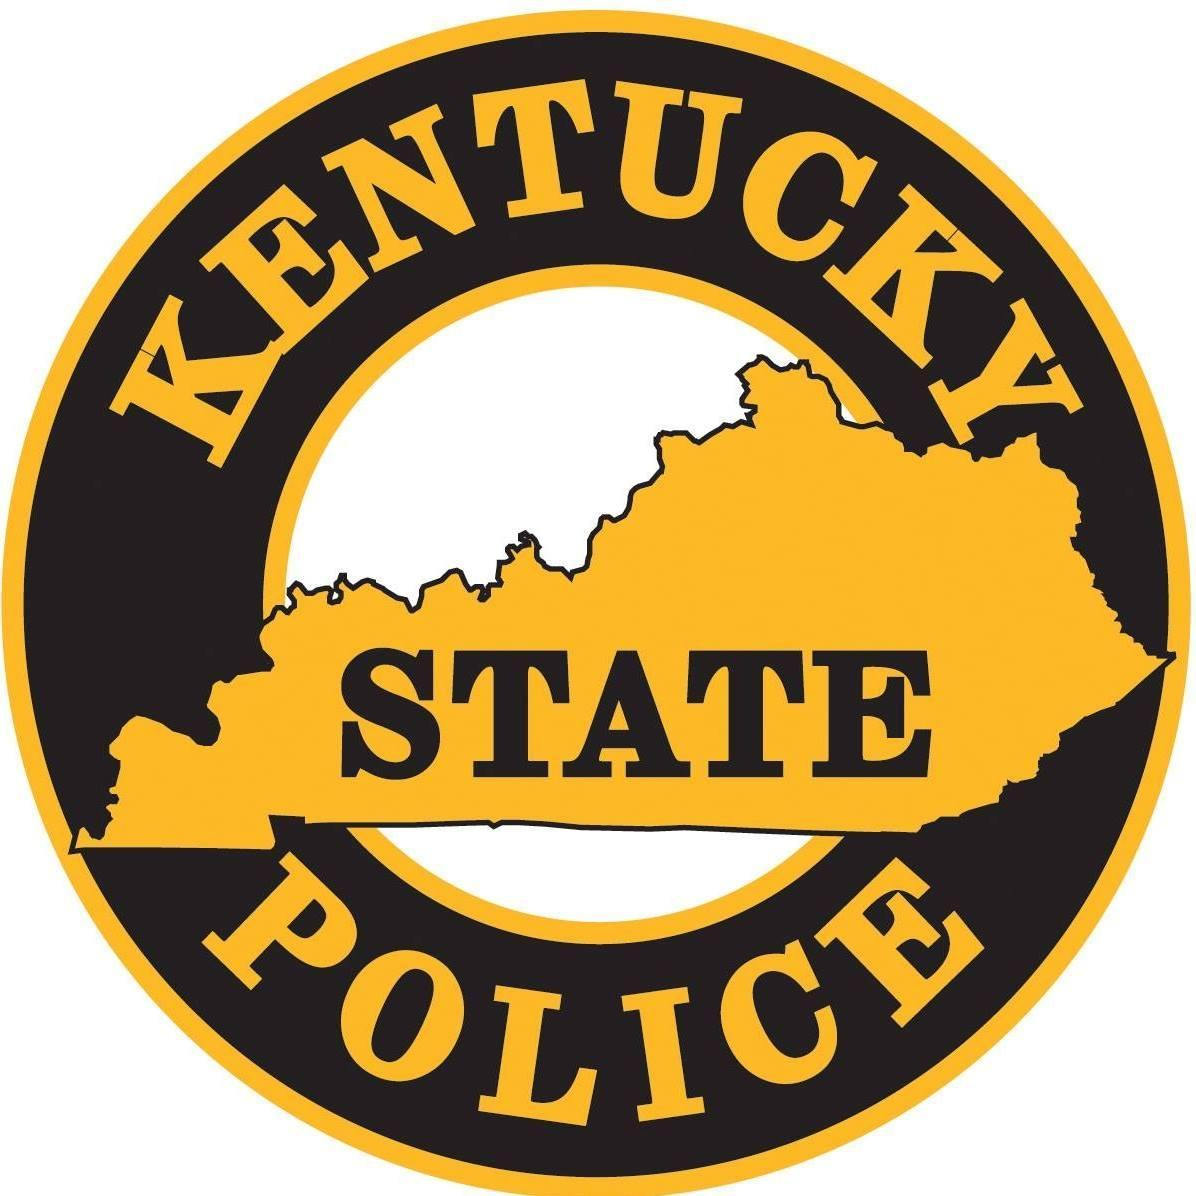 Execution Of Search Warrant Leads To Arrest